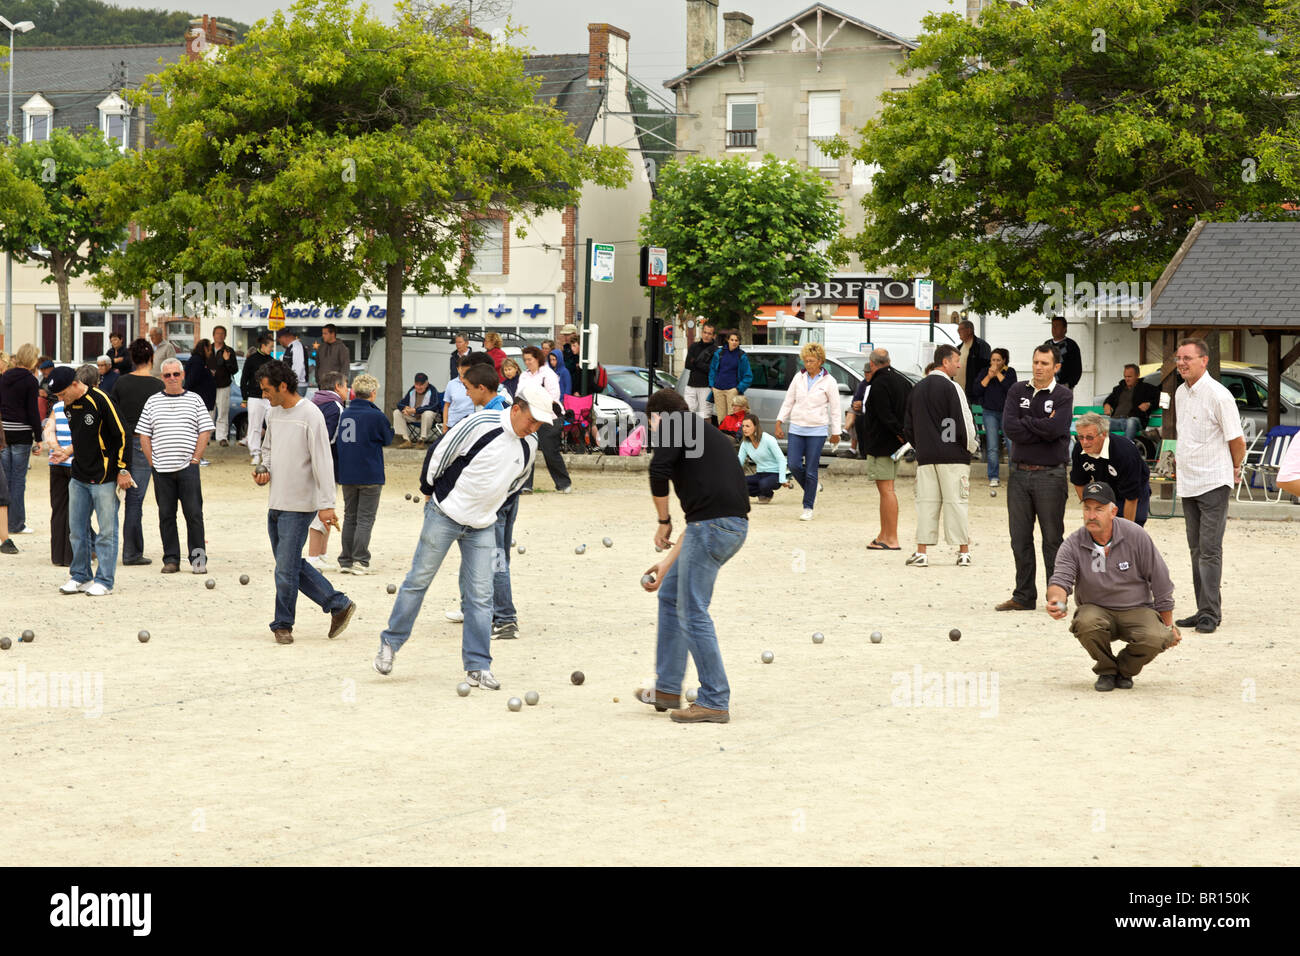 Petanque players at Perros Guirec in Brittany France Stock Photo